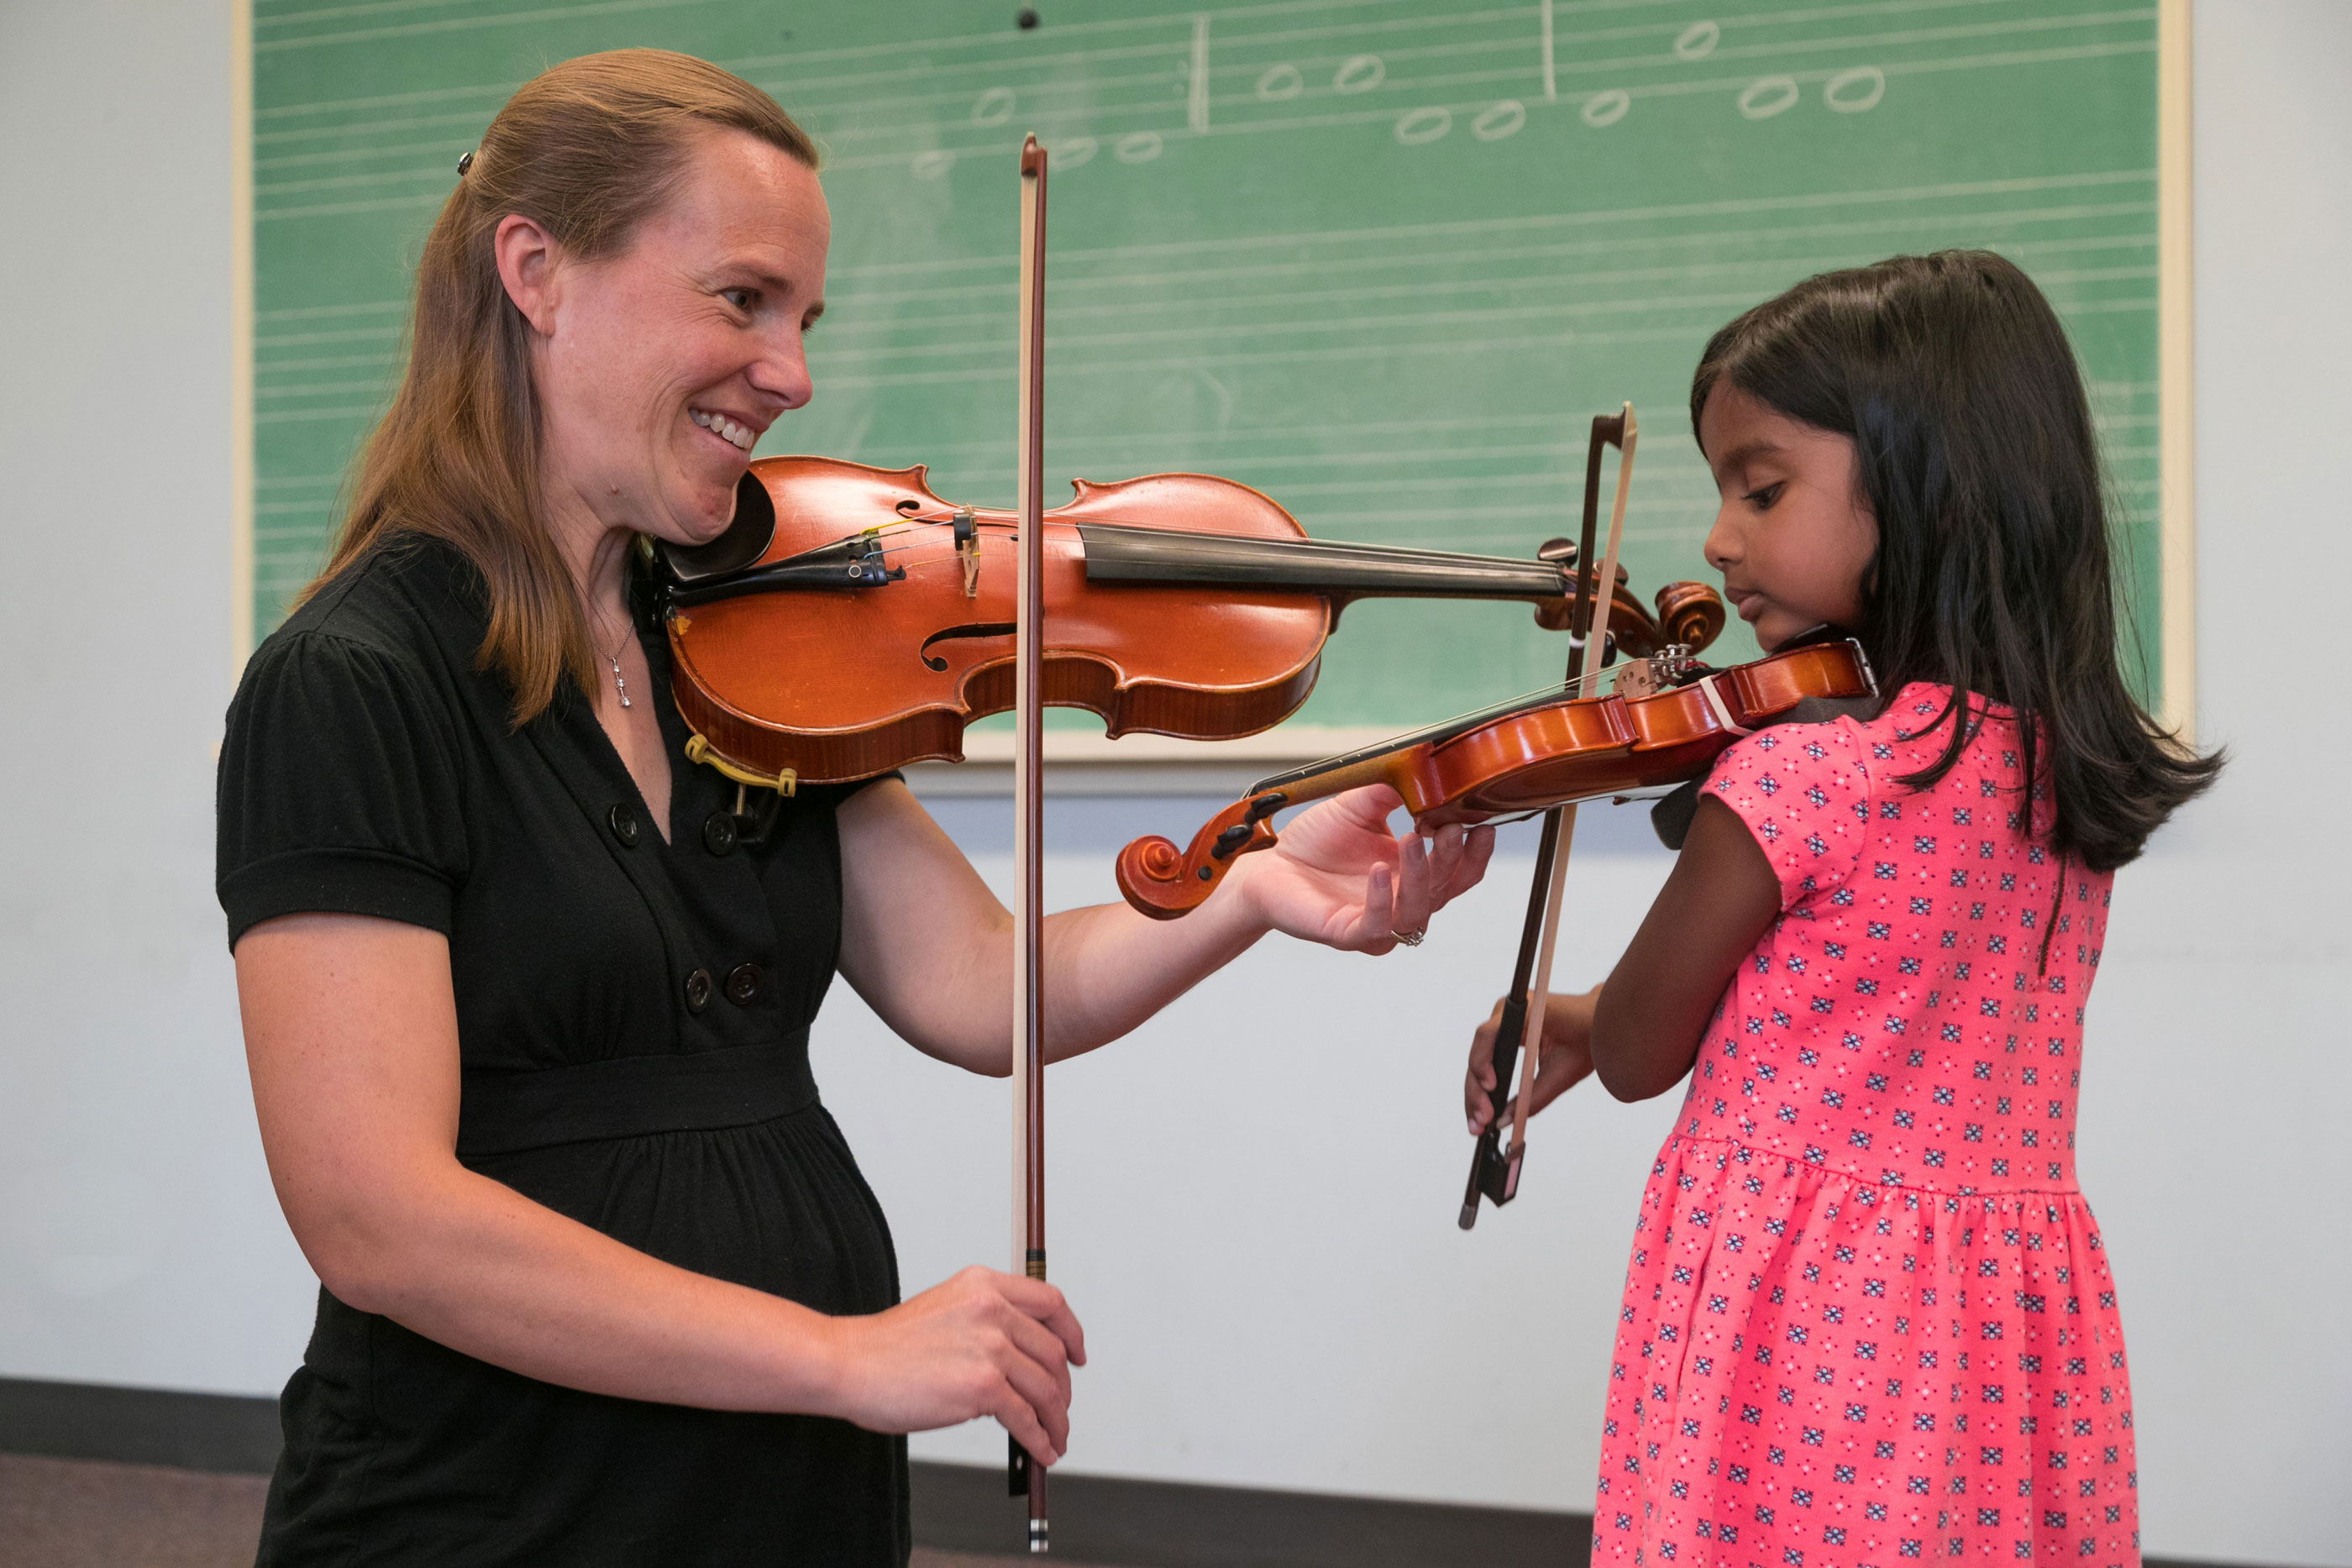 Young female child playing the violin with teacher